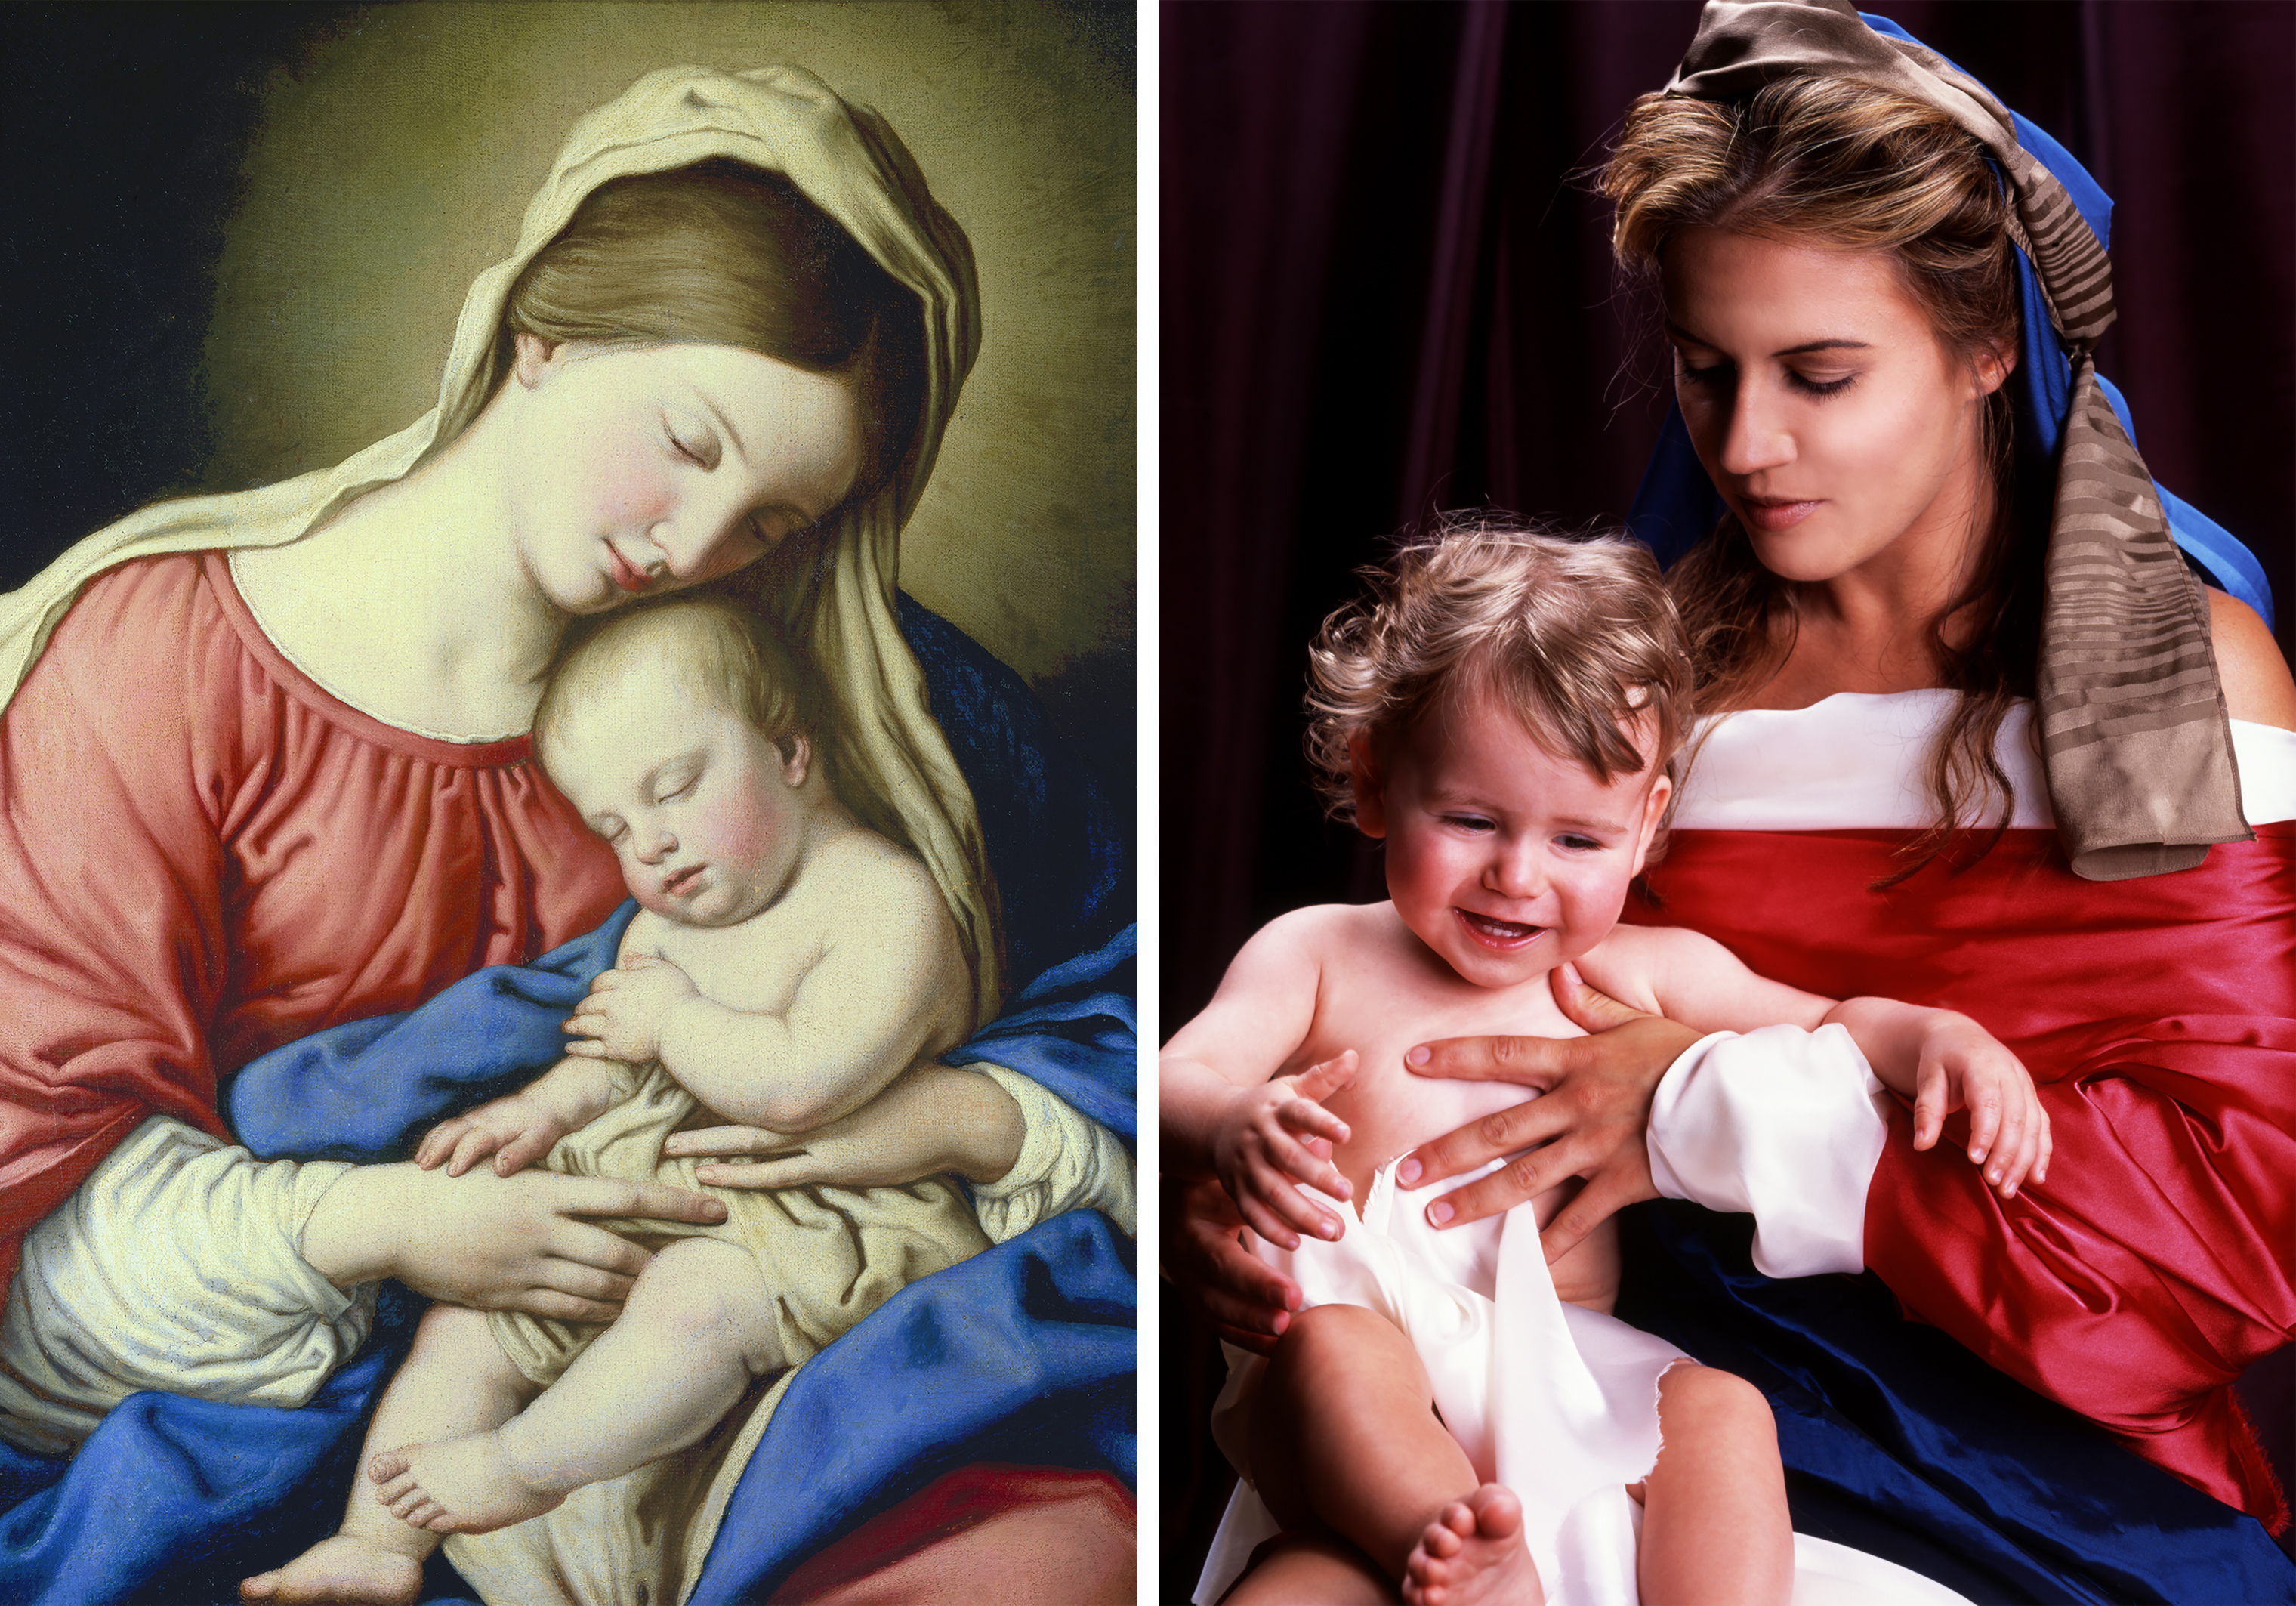 Left: Salvi Giovanni Battista, also known as il Sassoferrato, Madonna and Child, 17th century (Getty Images); Right: Nika Nesgoda, Madonna et Puerum, 2002